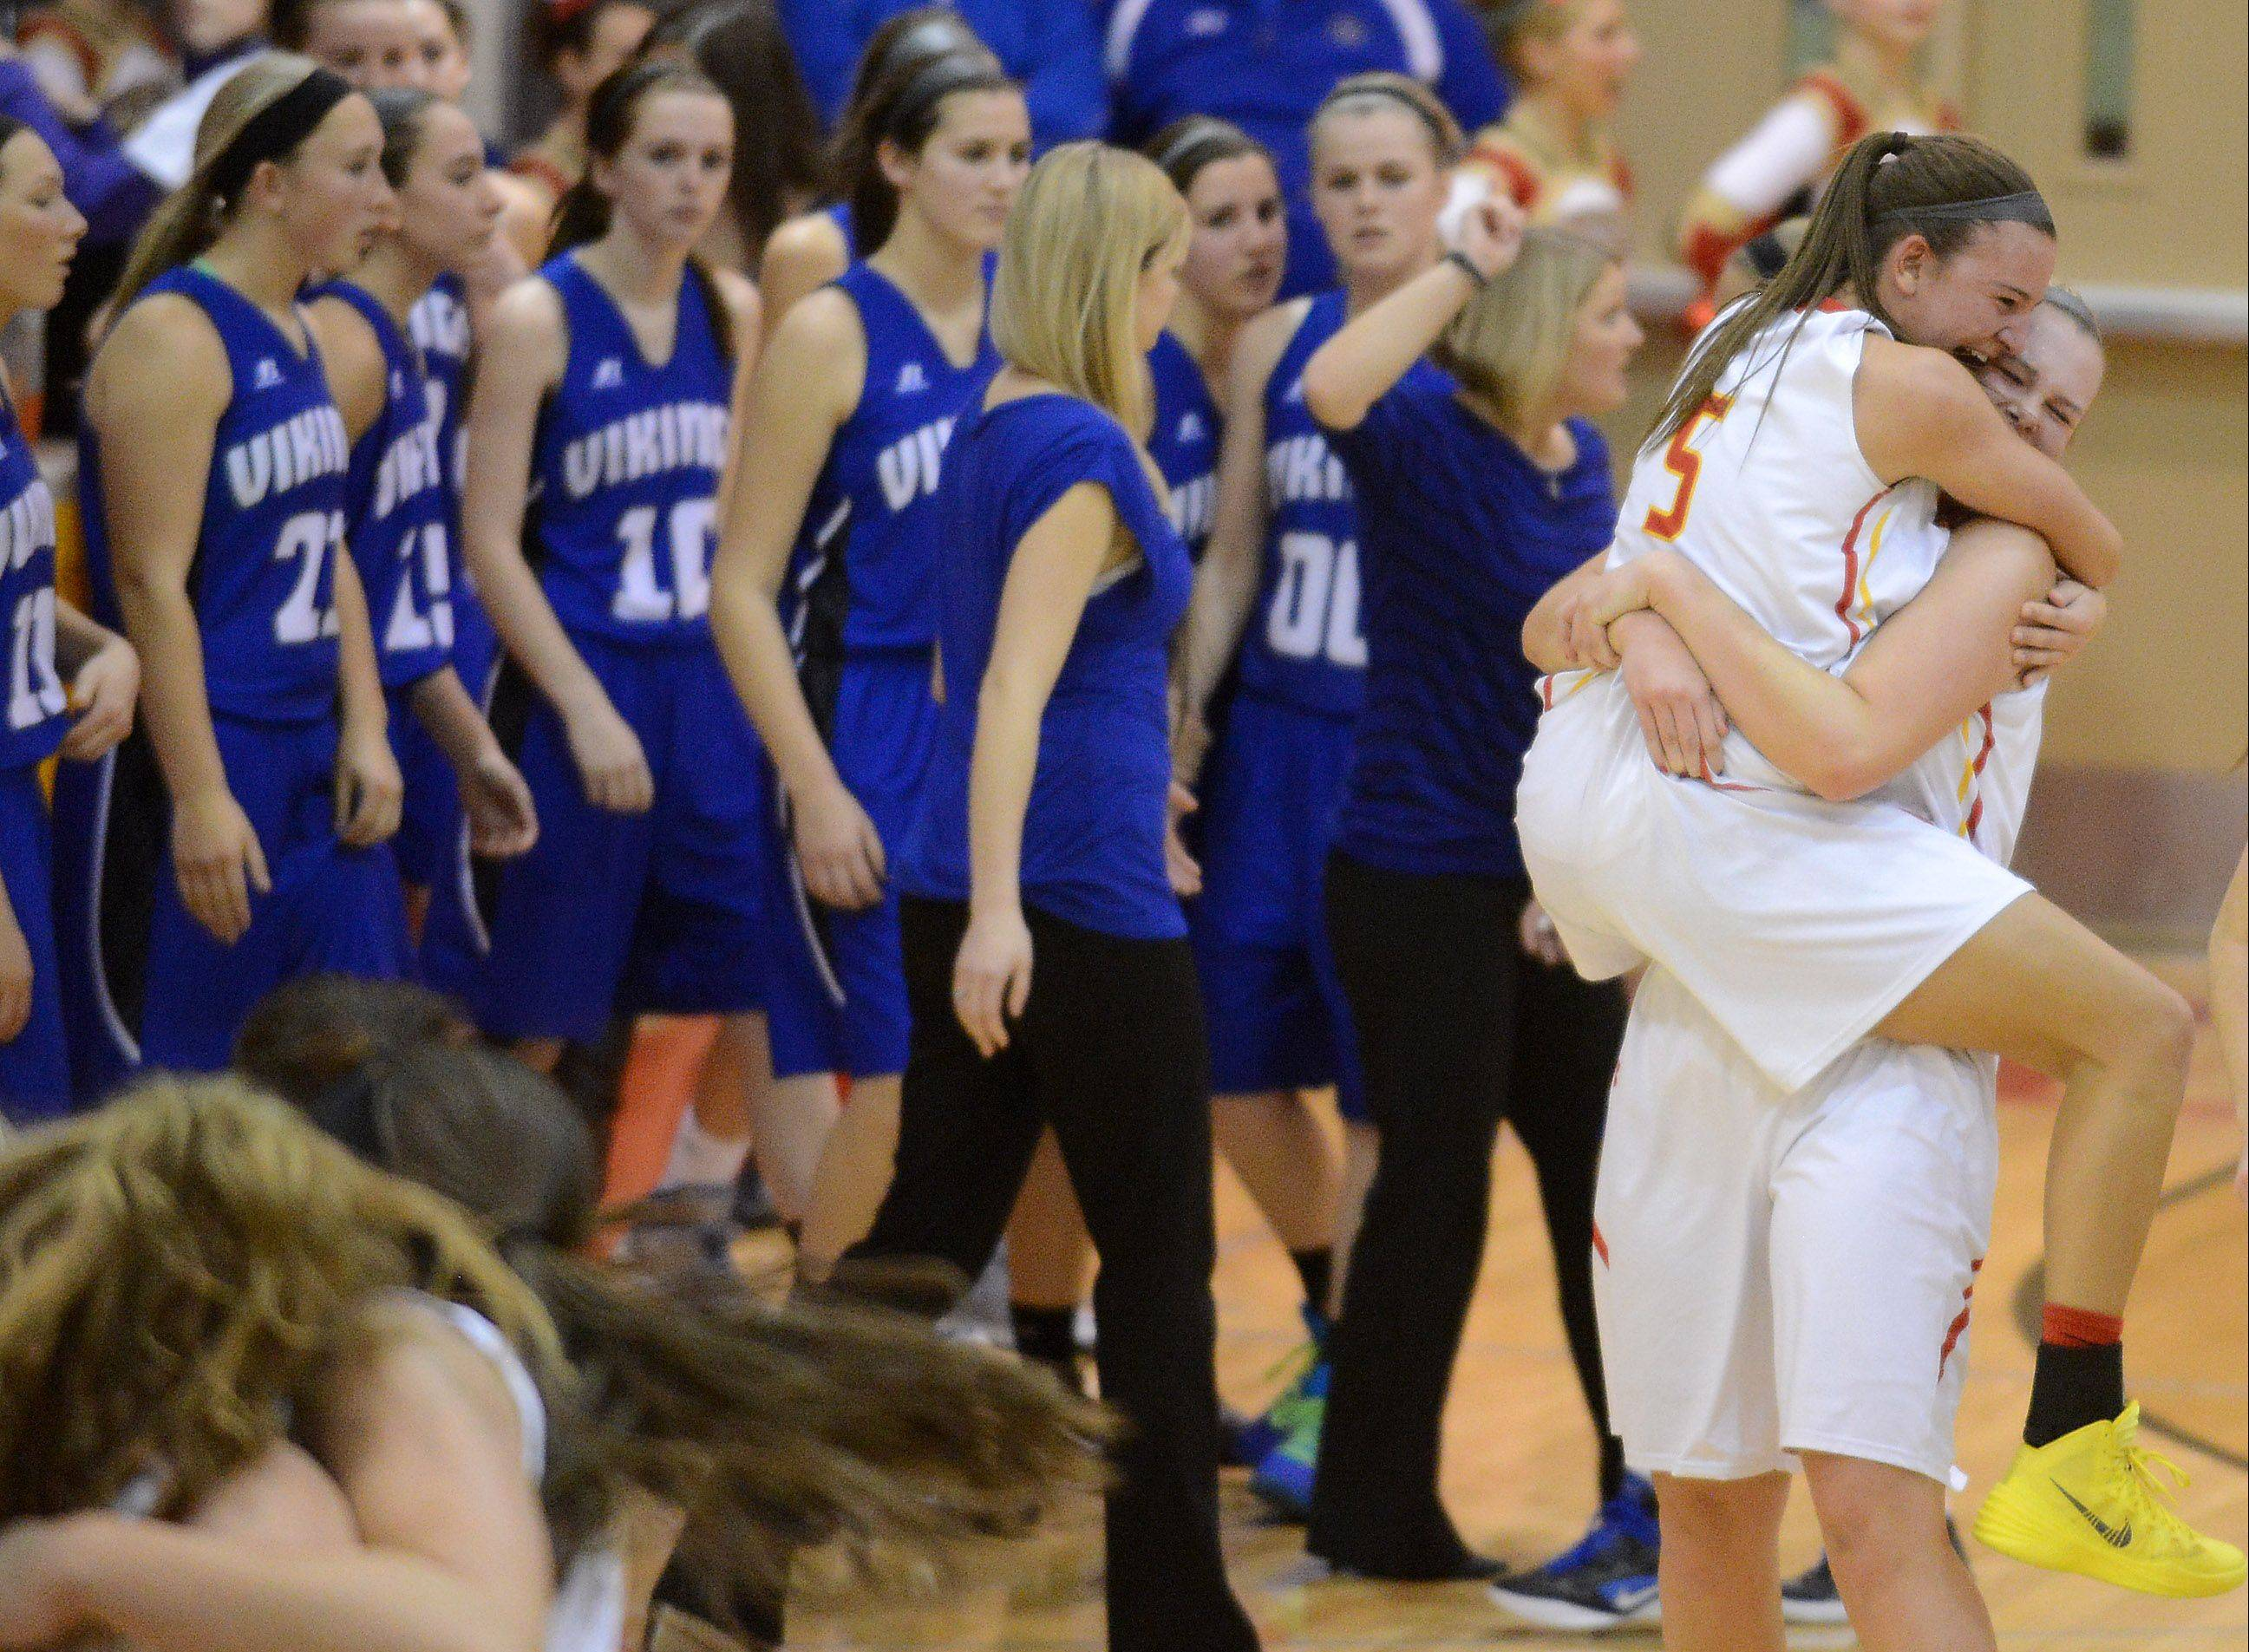 Batavia's Liza Fruendt (5) jumps in to the arms of teammate Erin Bayram (33) after beating Geneva Friday in Batavia.